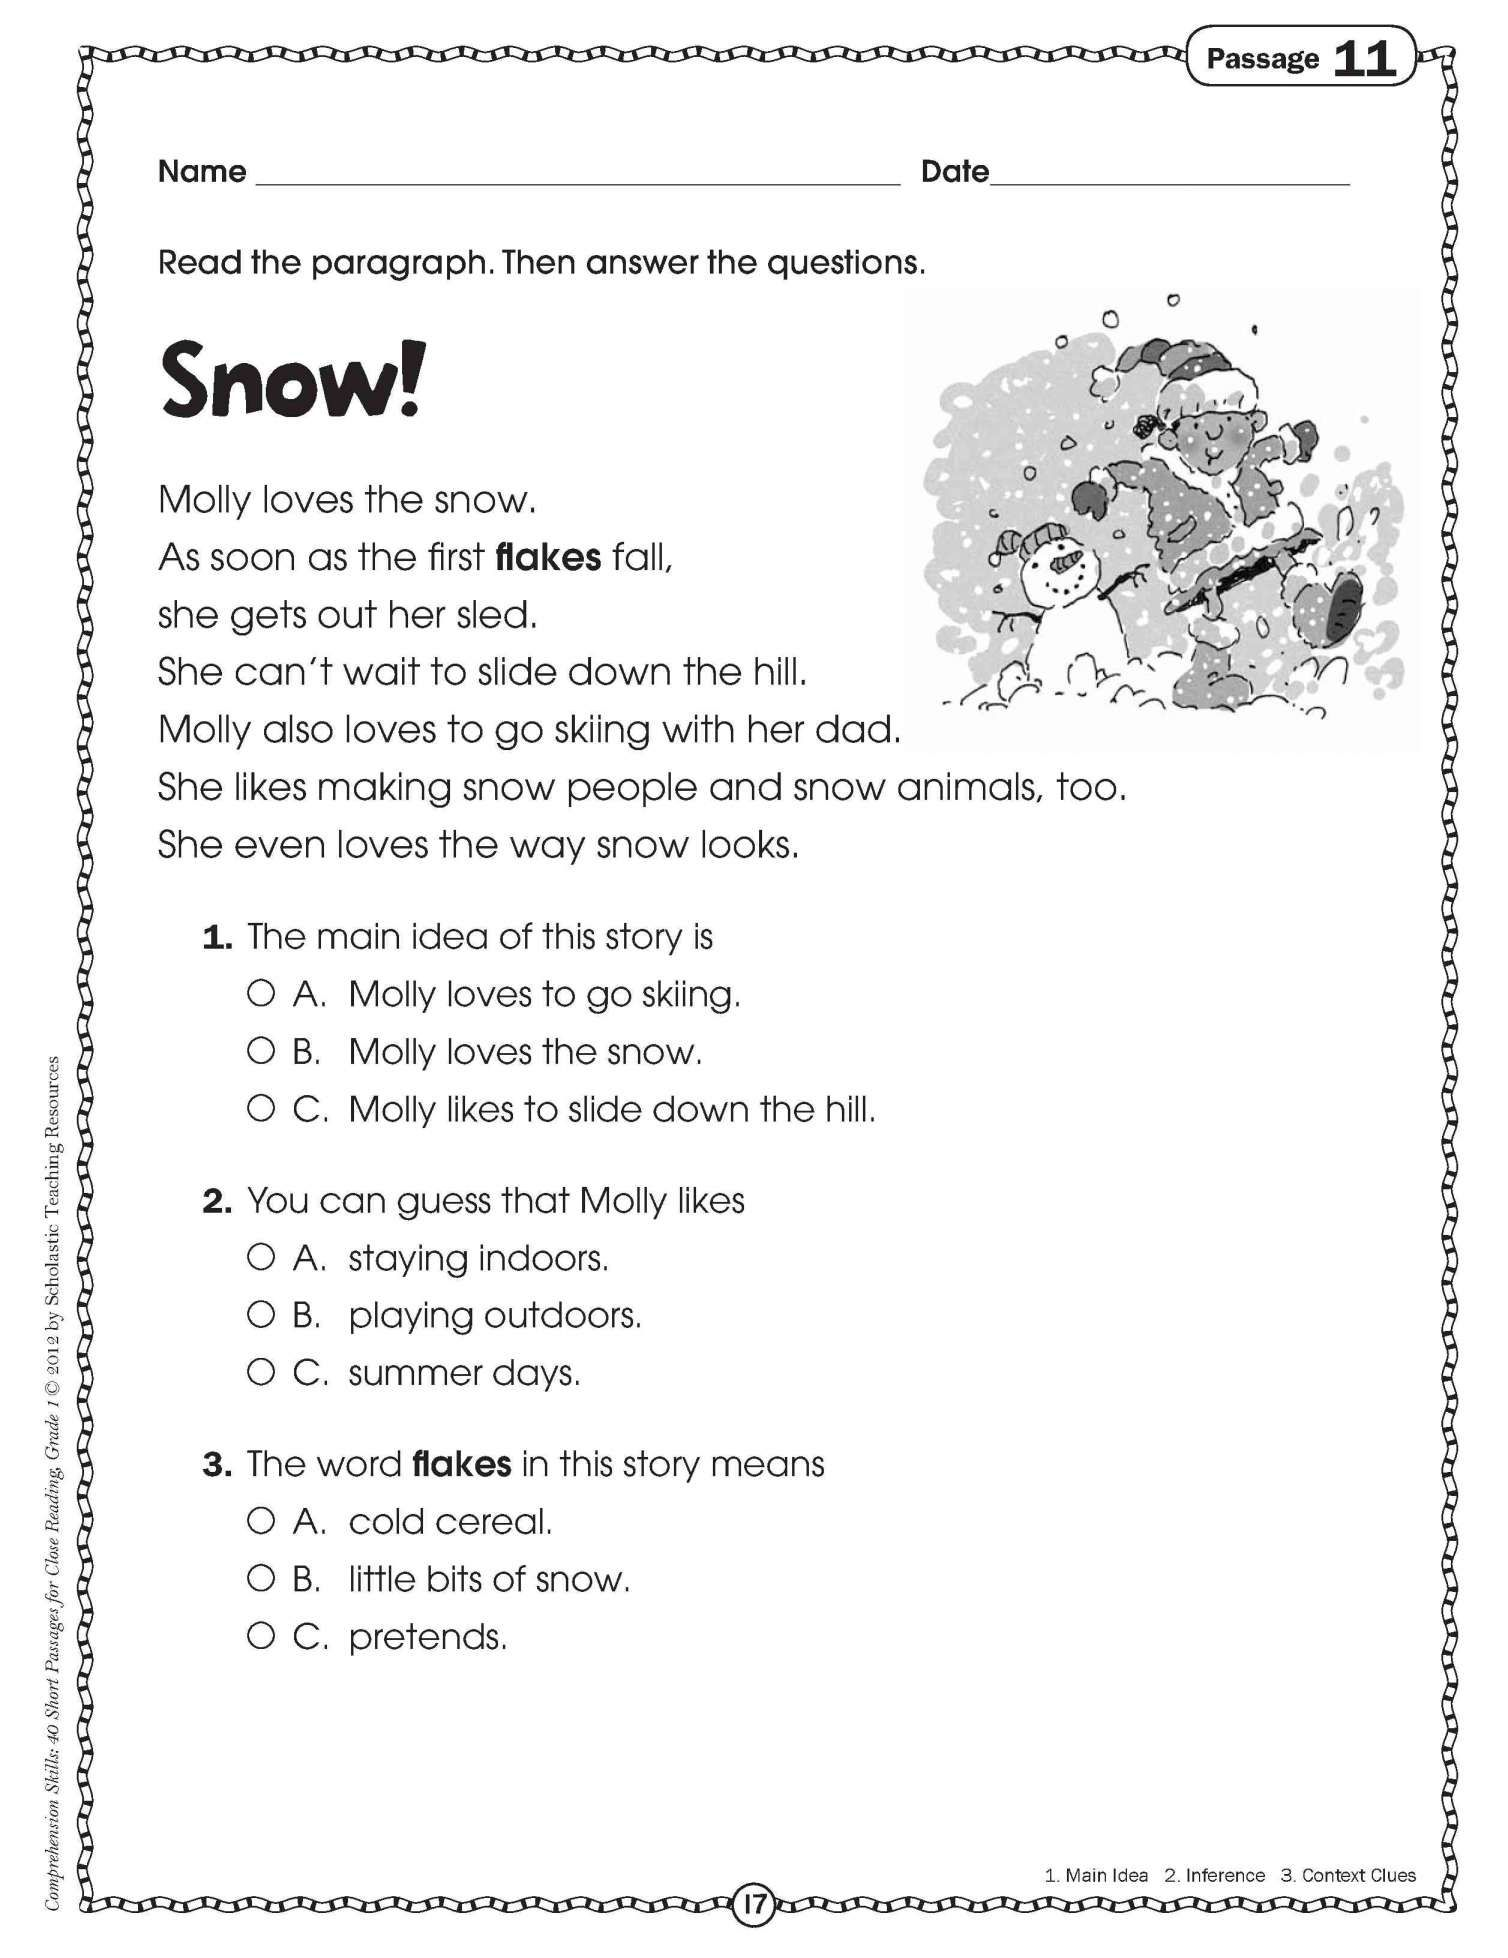 7 Reading Comprehension Worksheets 5th Grade Multiple Choice Grade Printable Sheets Com In 2020 Comprehension Worksheets Reading Worksheets Main Idea Worksheet